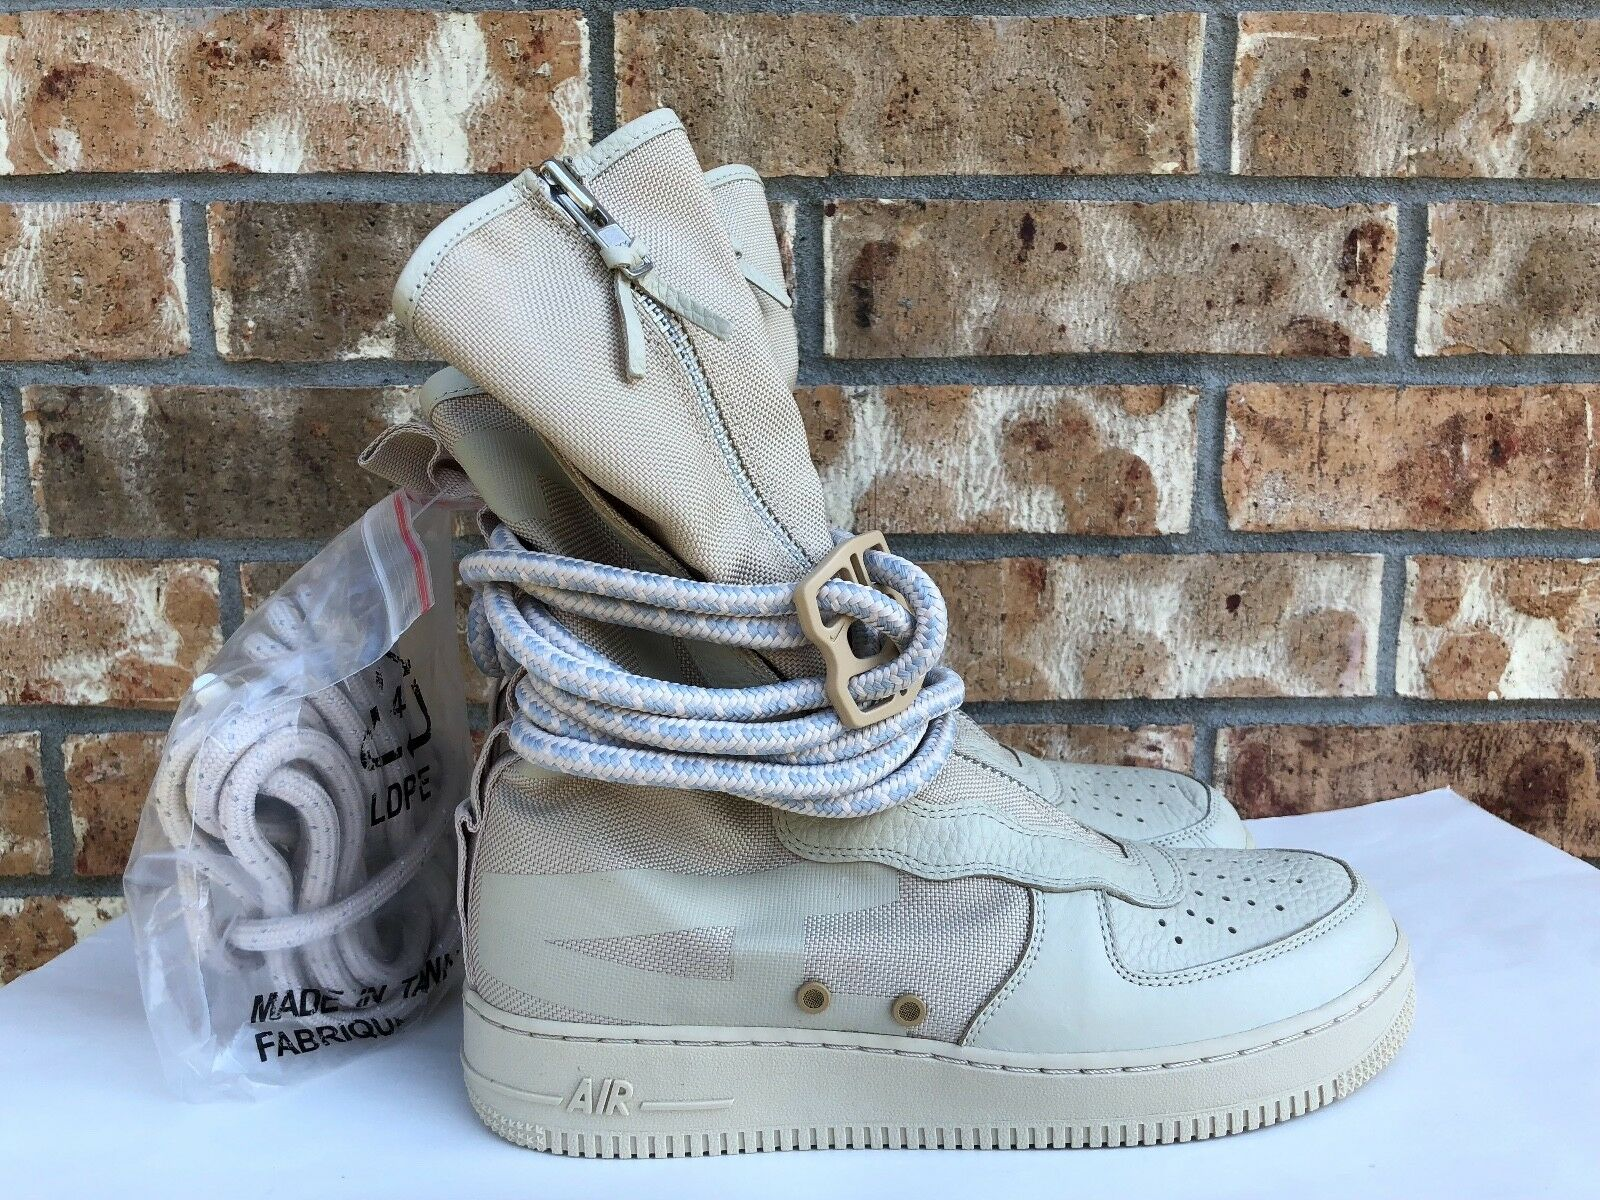 Gli uomini sono nike air force 1 sf af1 af1 af1 ciao speciale campo rattan rattan dimensioni aa1128-200 325017